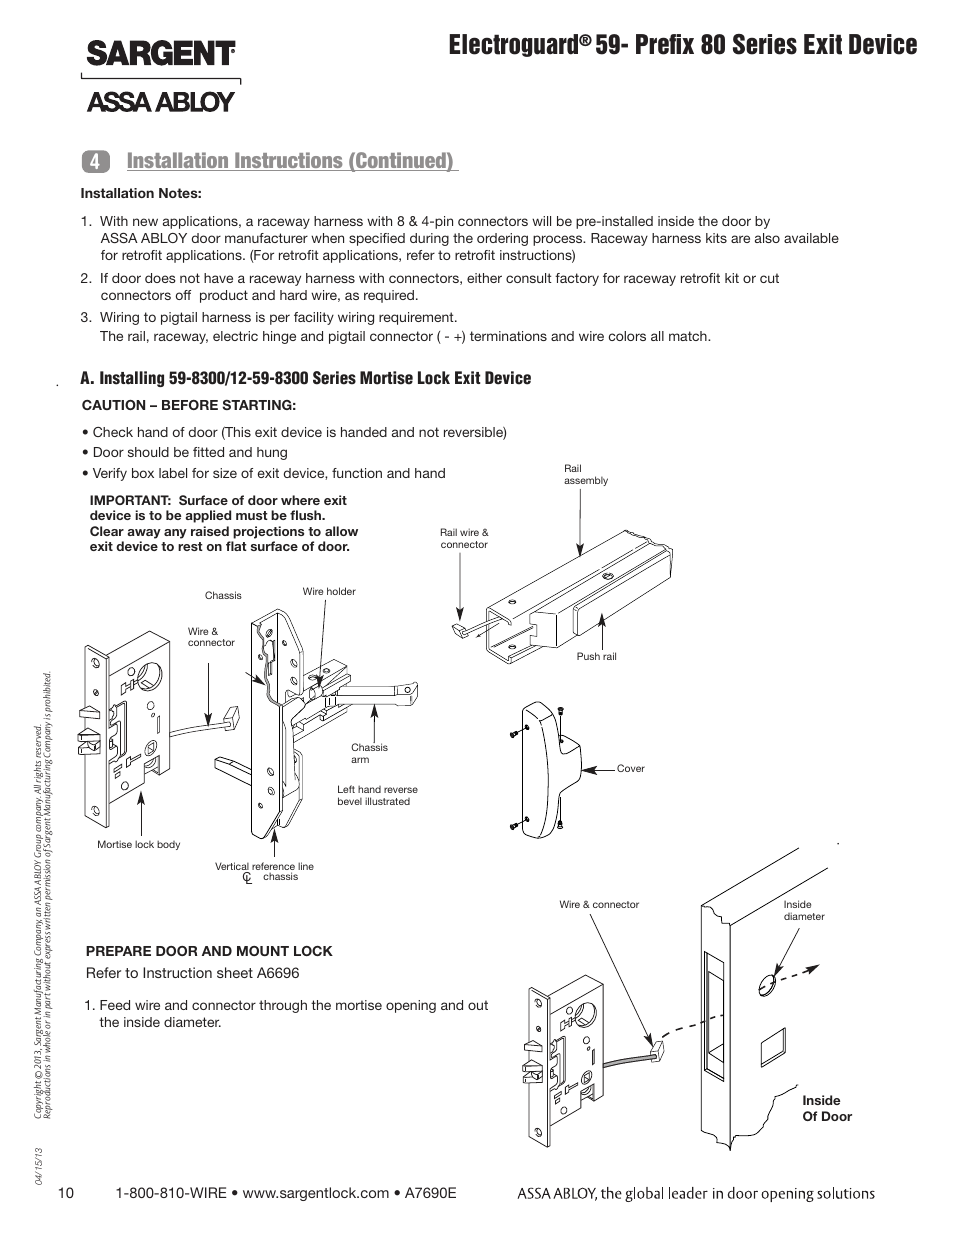 Electroguard Prefix 80 Series Exit Device 4installation Wiring Diagrams By Sargent Locks Instructions Continued Fm8700 Surface Vertical Rod User Manual Page 10